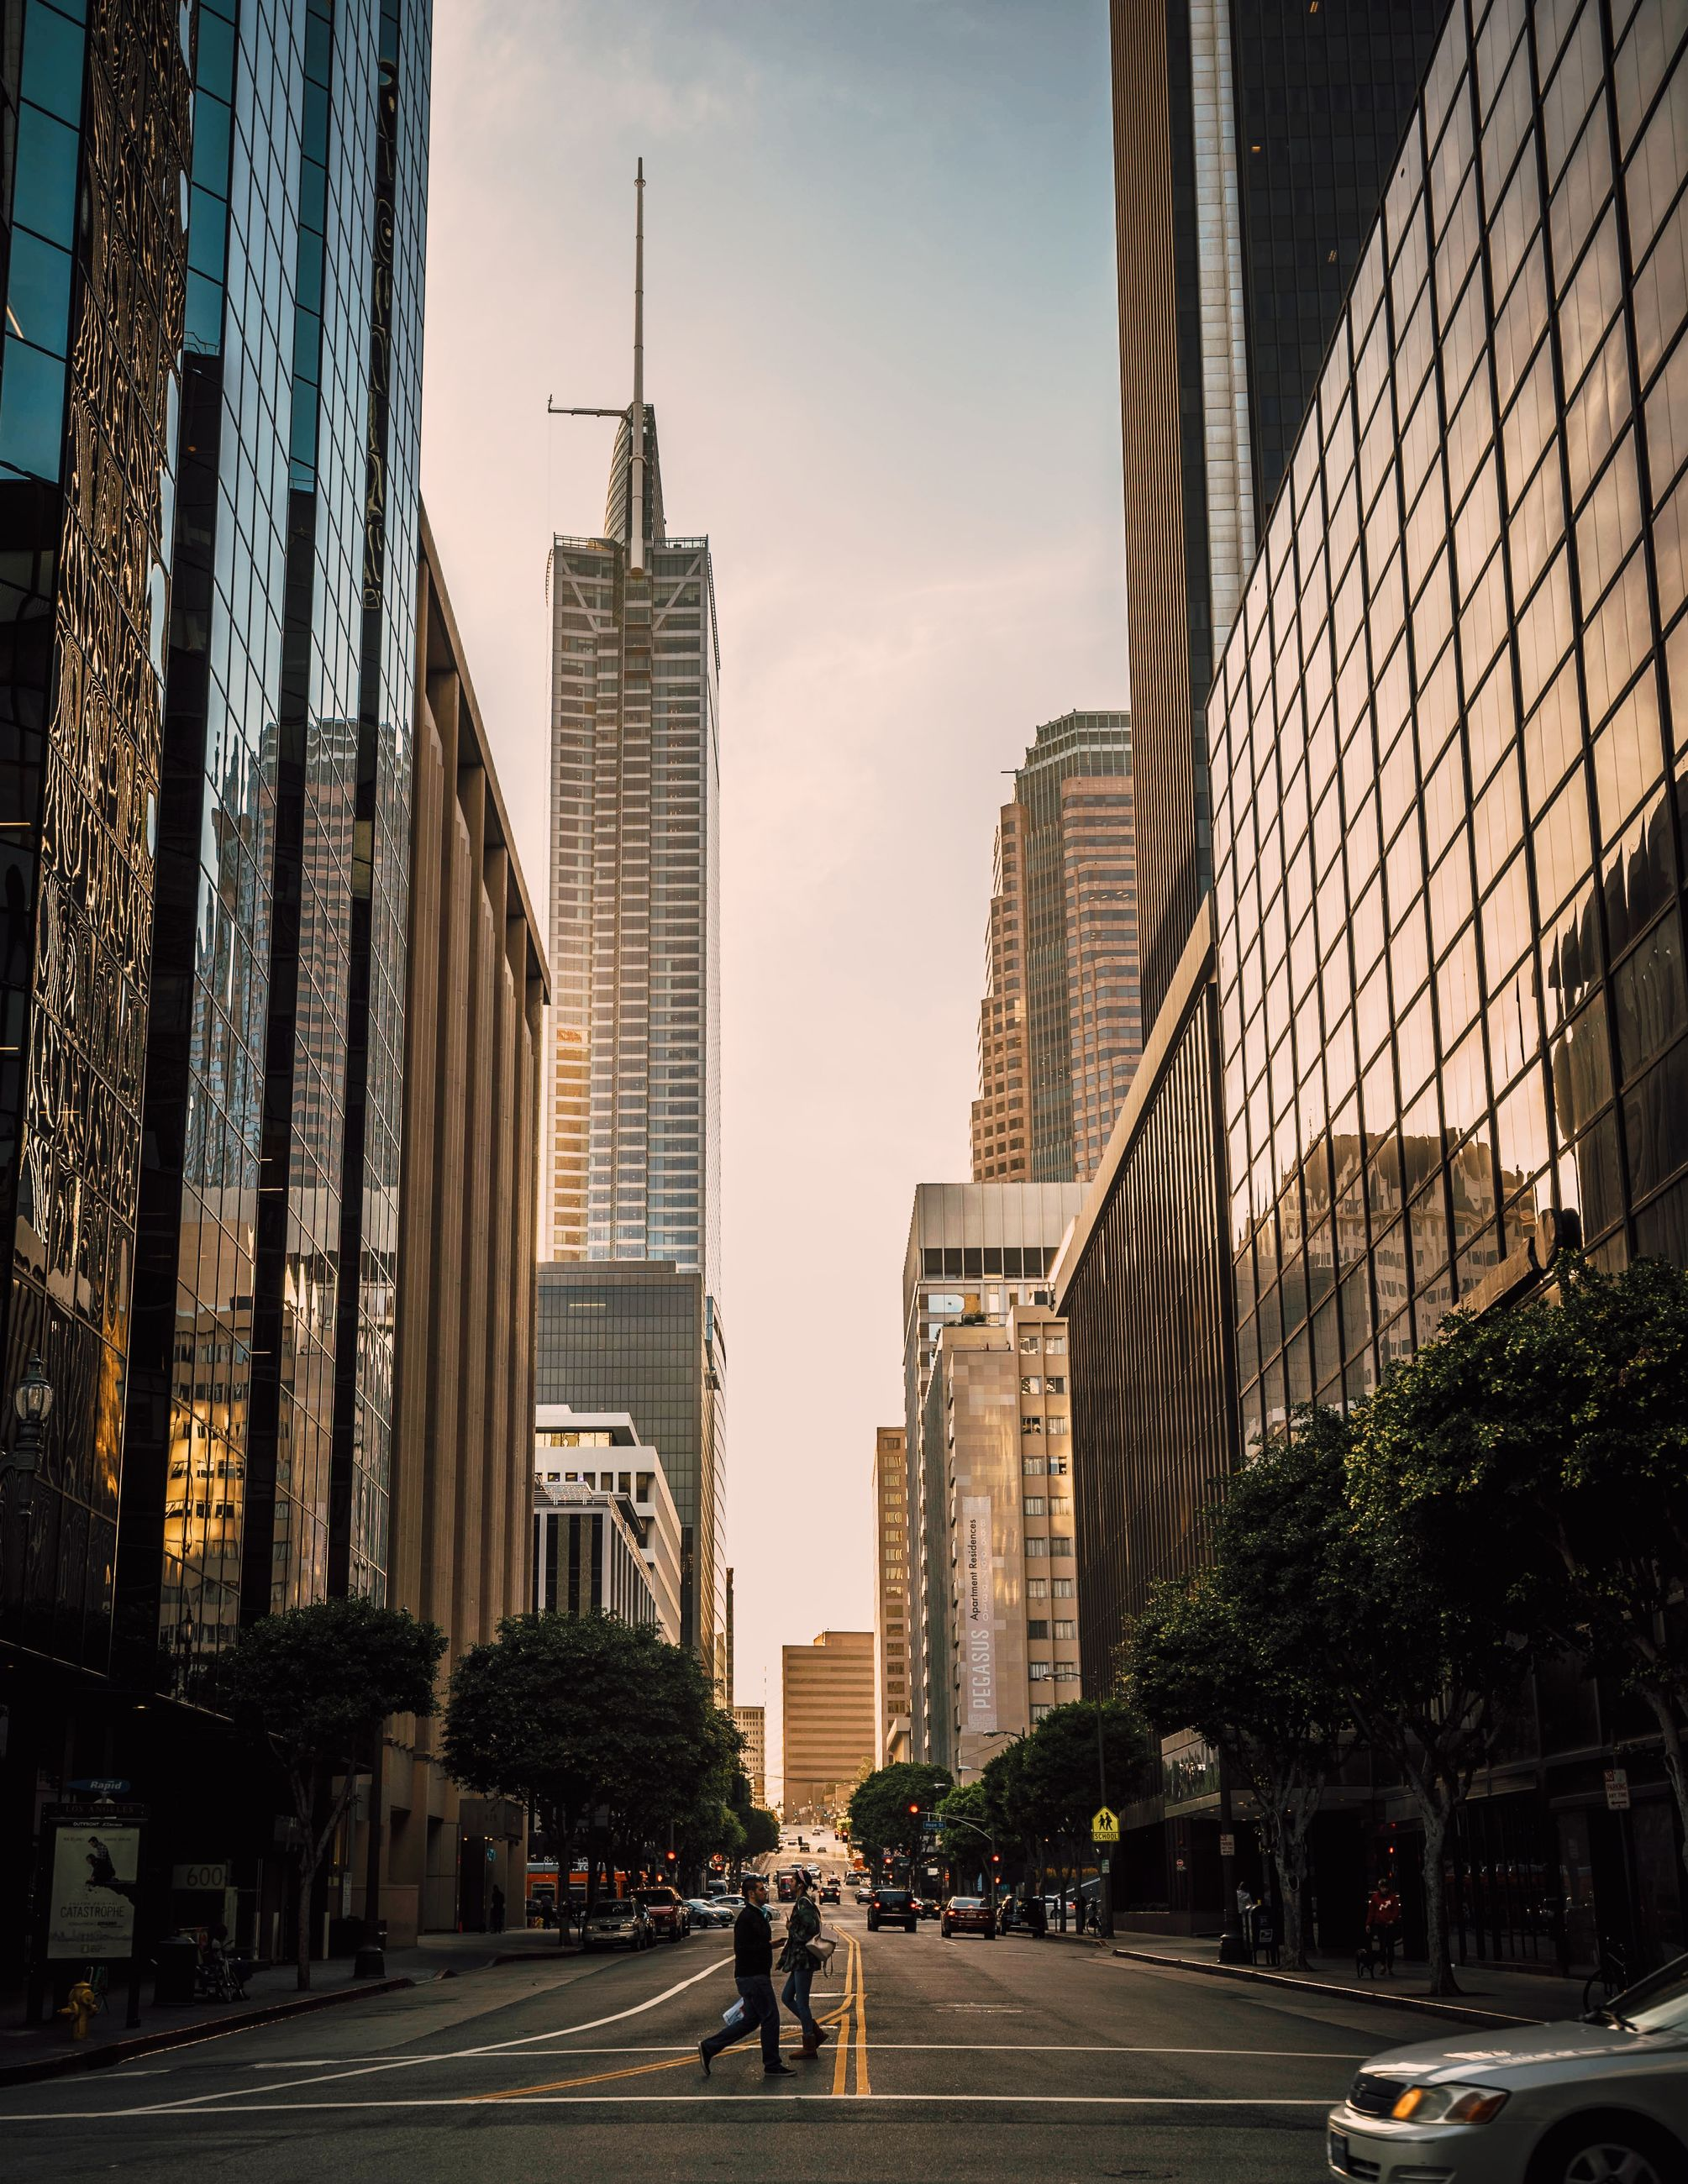 architecture, skyscraper, city, built structure, building exterior, modern, sky, tall, travel destinations, outdoors, day, no people